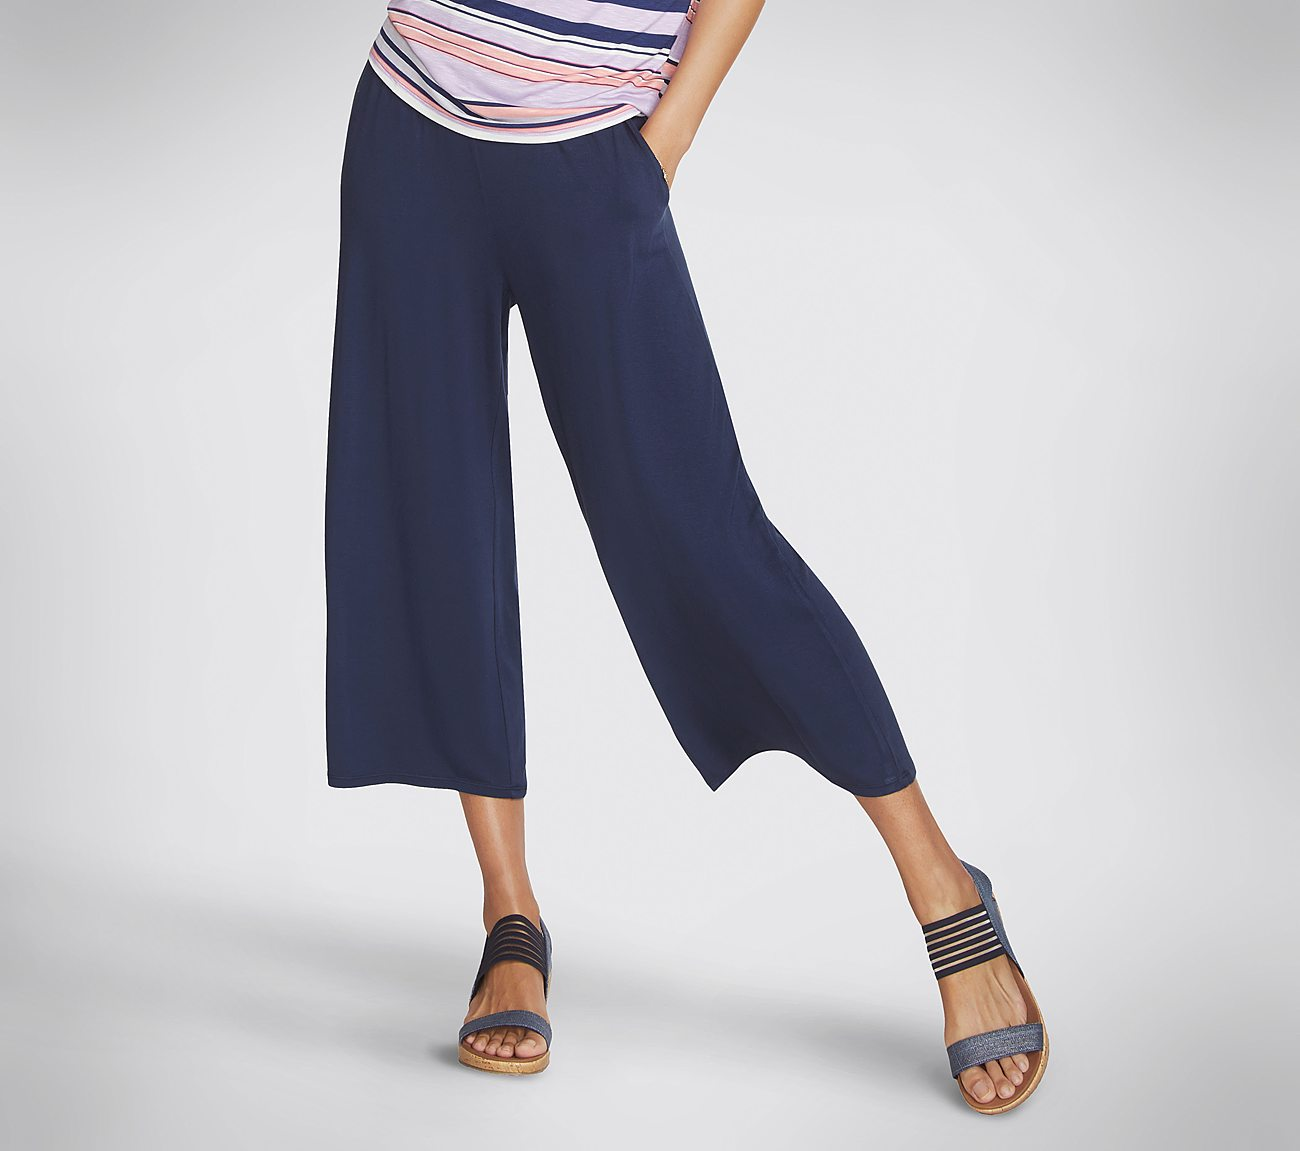 Skechers Apparel Resort Wide Leg Crop Pant